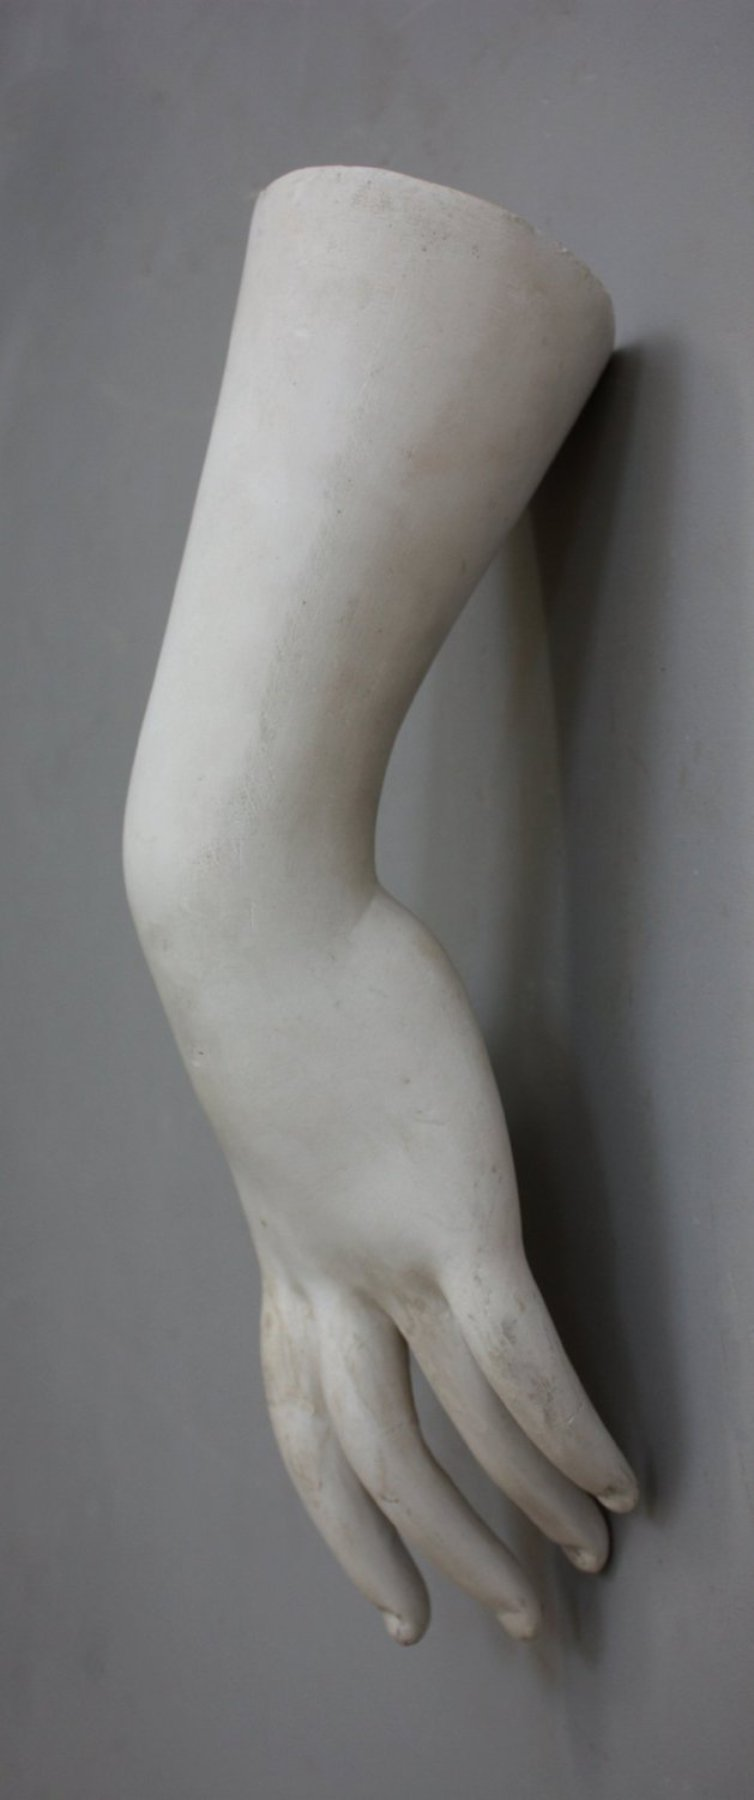 Left Hand of Venus de' Medici - Item #604